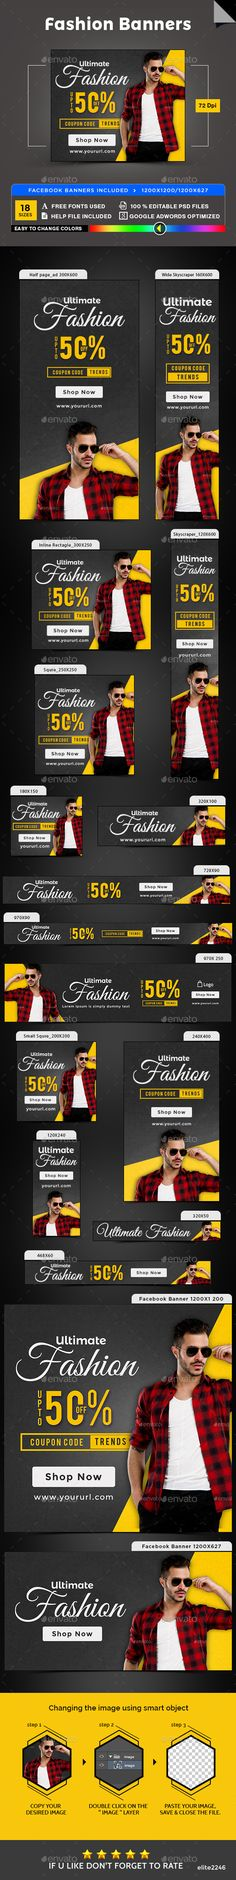 Fashion Banners — Photoshop PSD #business #retargeting • Available here → https://graphicriver.net/item/fashion-banners/19879935?ref=pxcr